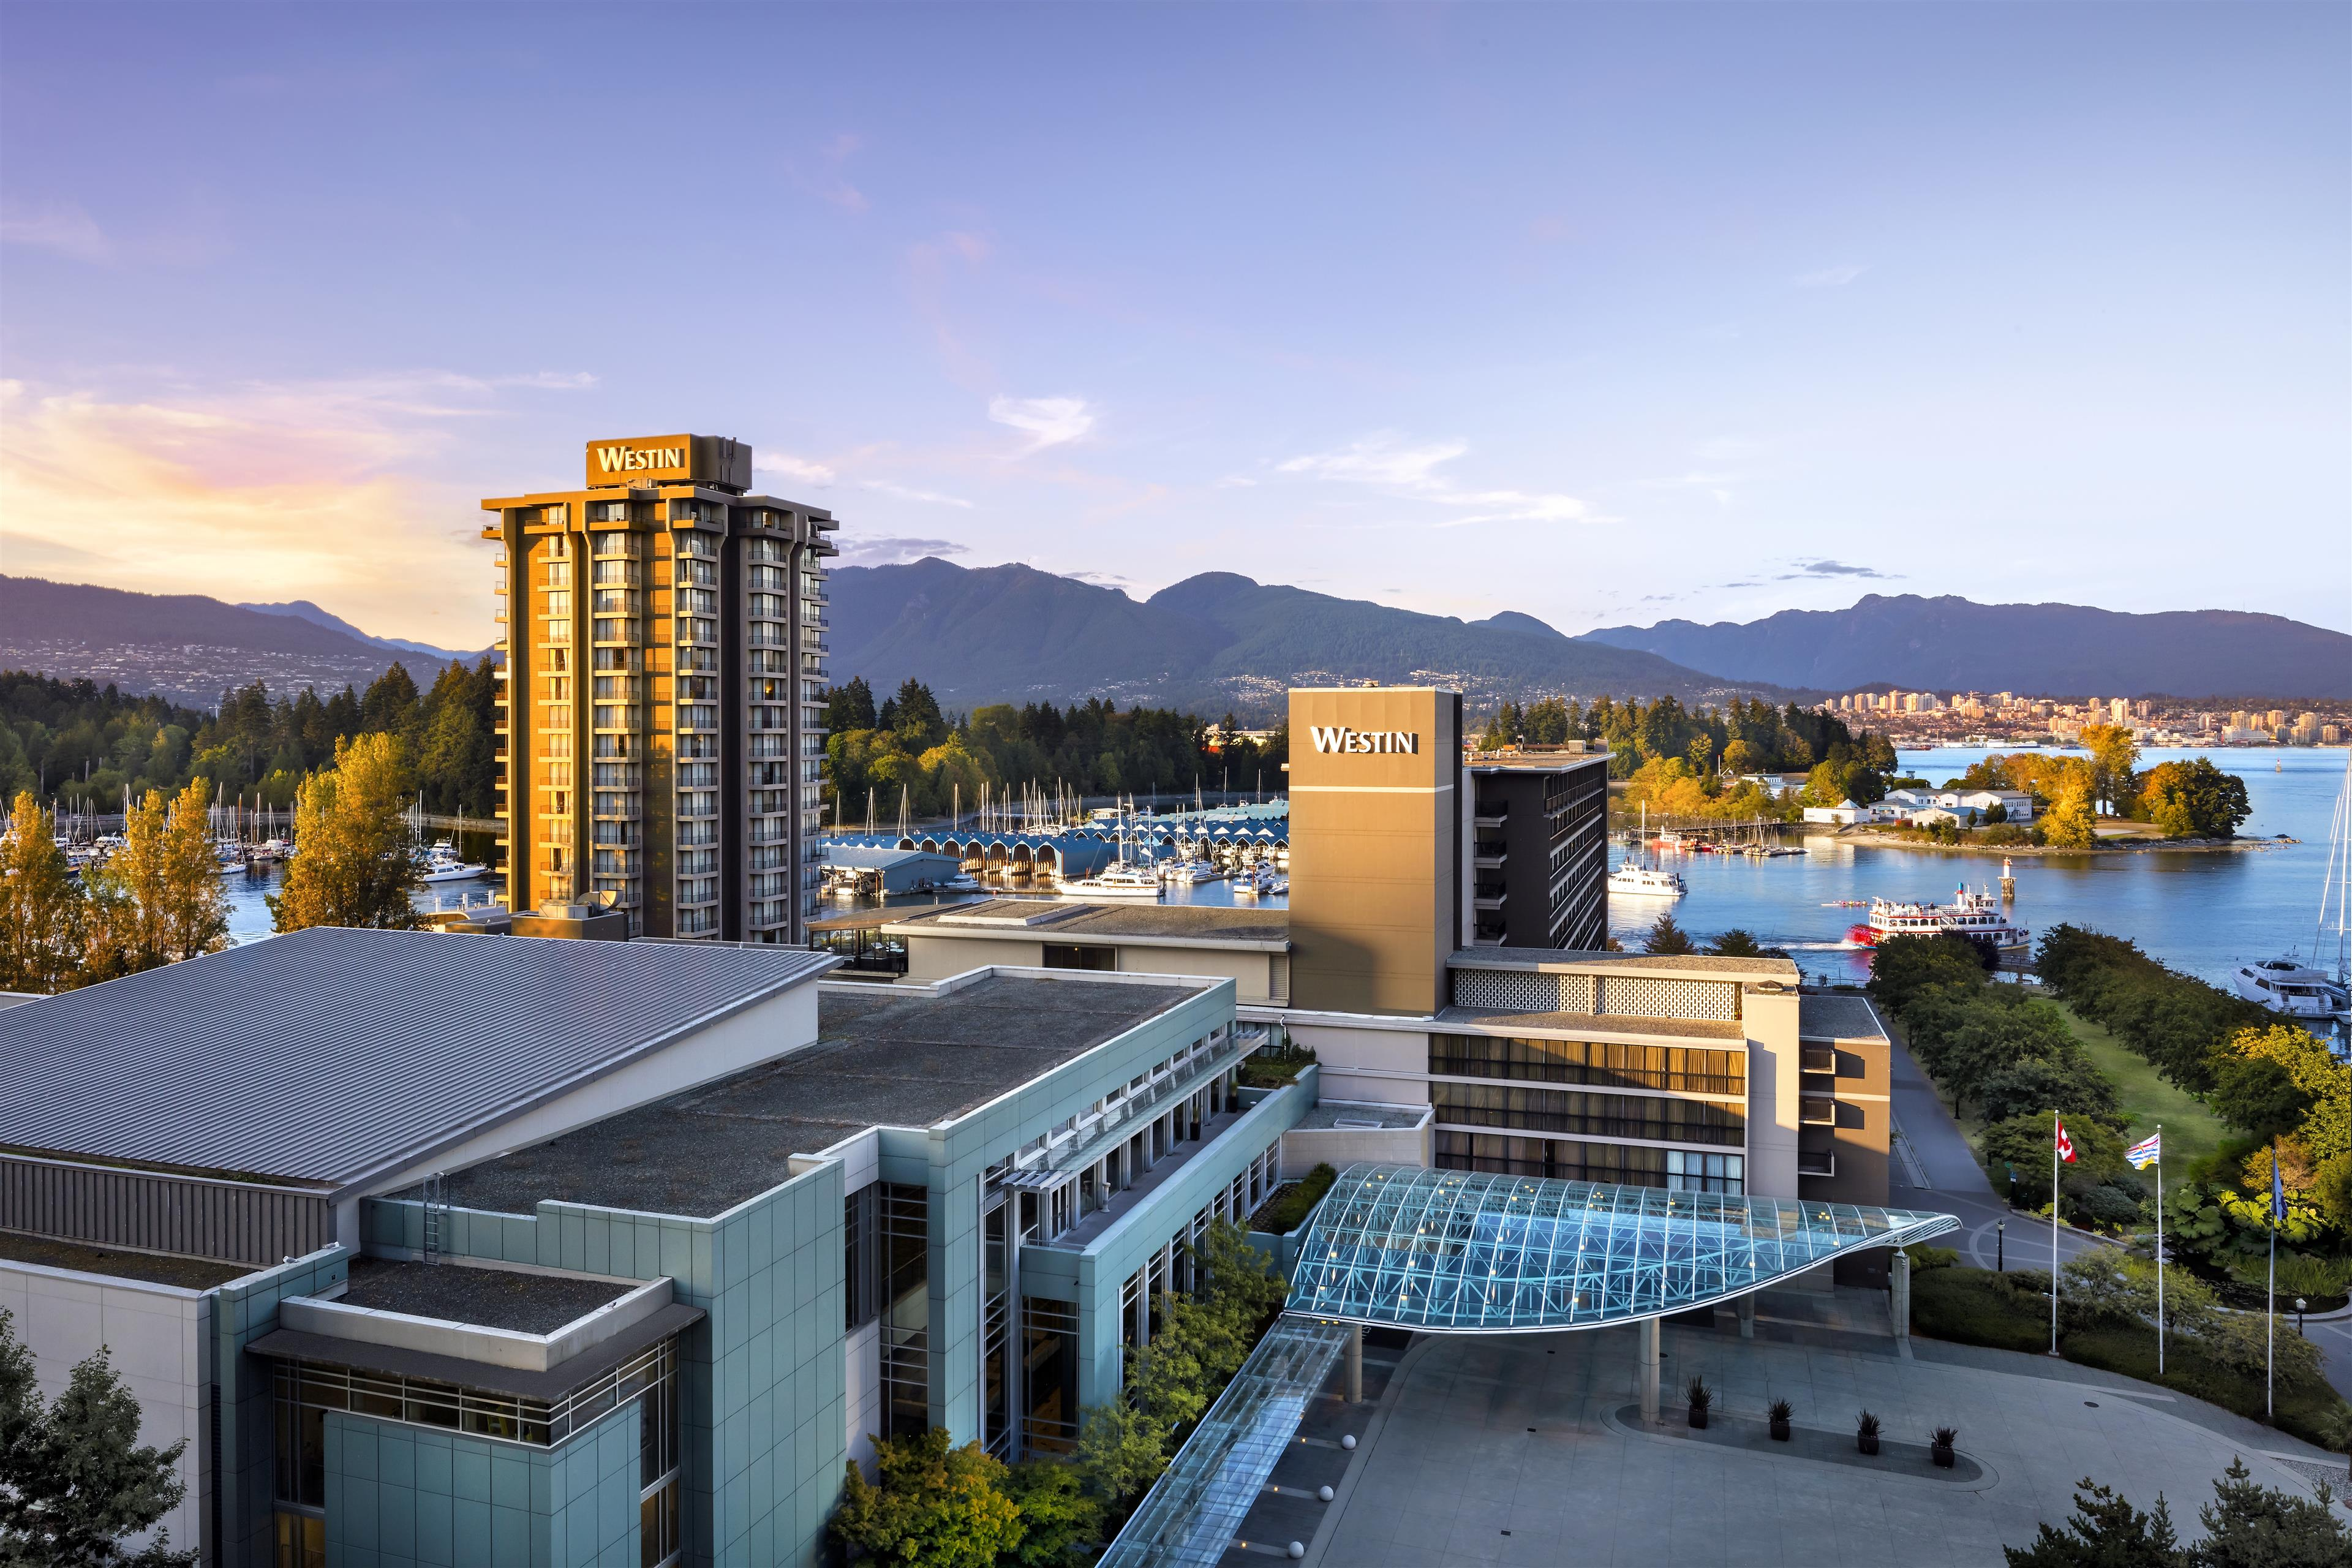 The Westin Bayshore, Vancouver in Vancouver: Westin Bayshore Hotel & Conference Center Exterior